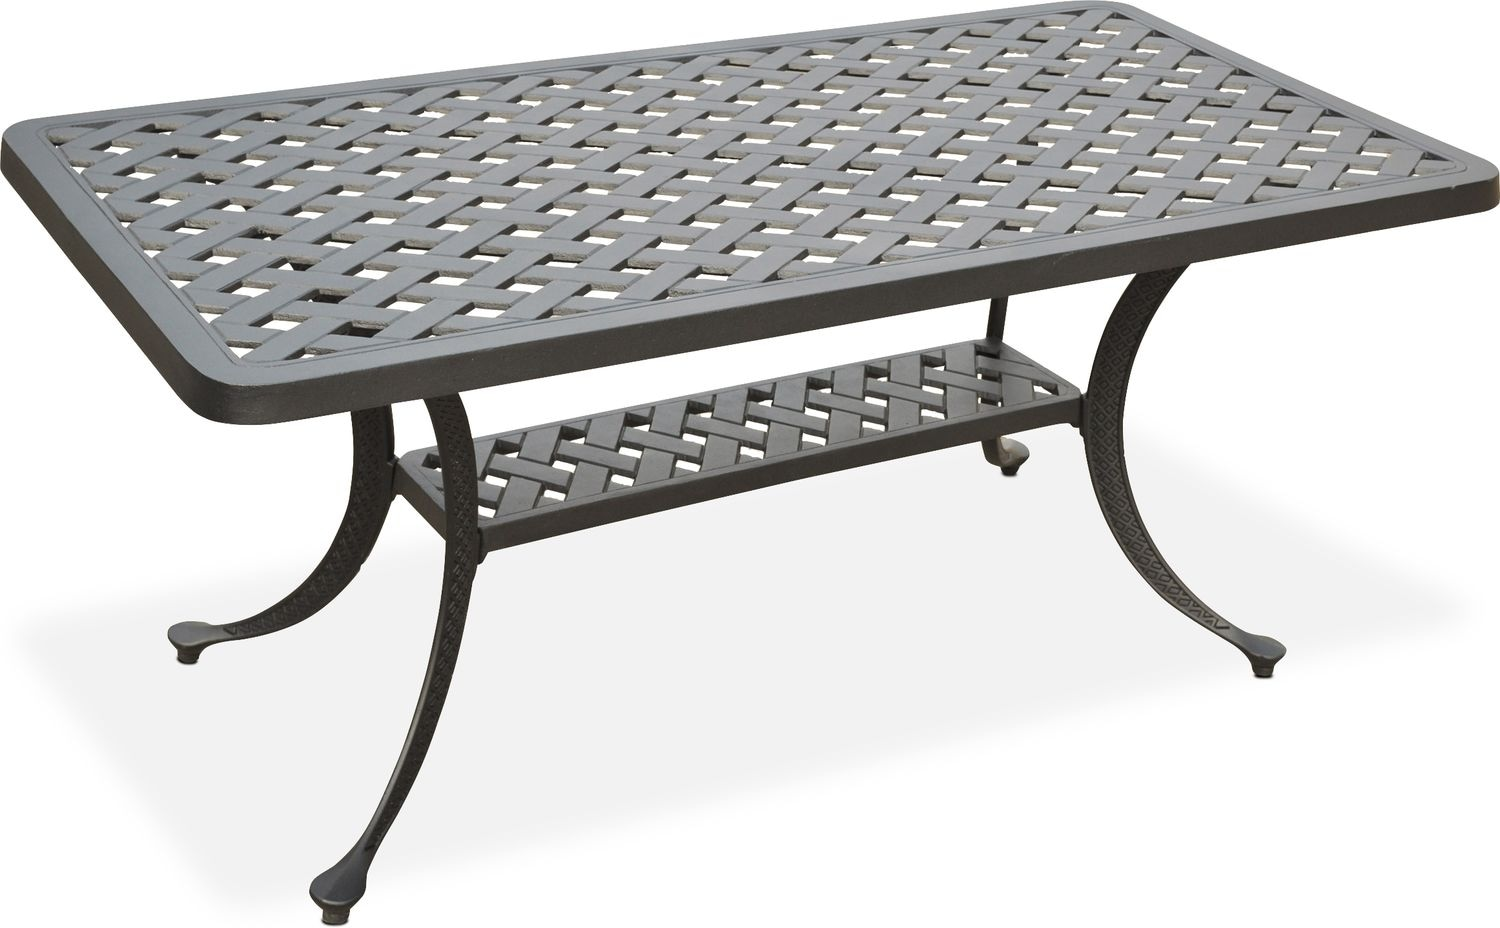 Outdoor Furniture - Hana Outdoor Coffee Table - Black